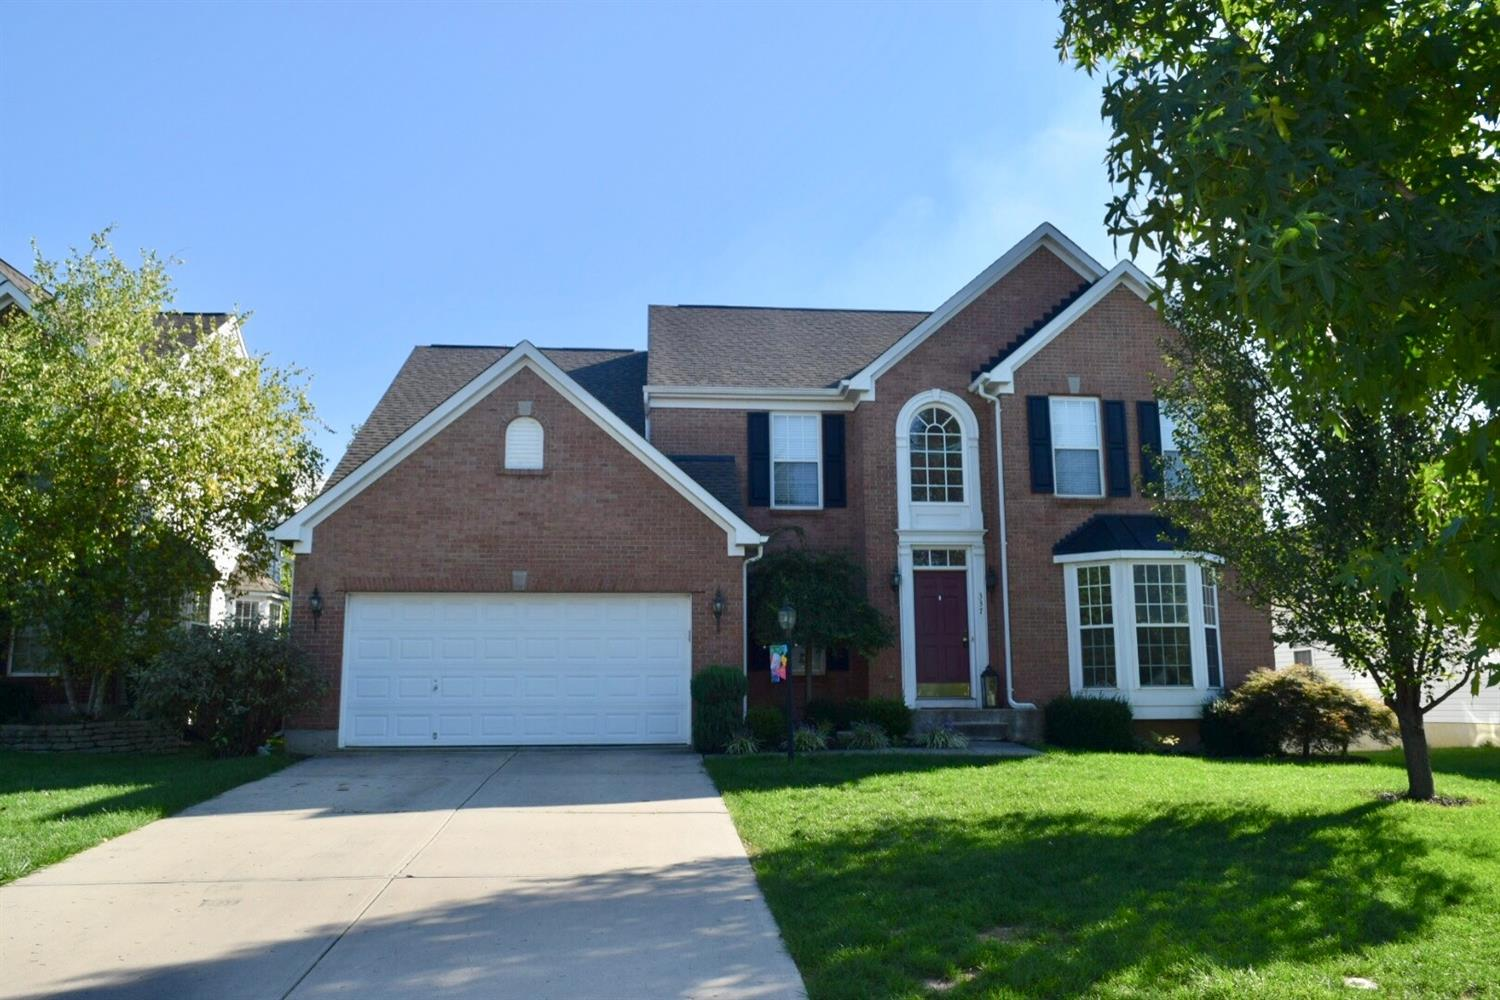 Property for sale at 337 Leather Leaf Lane, Lebanon,  OH 45036